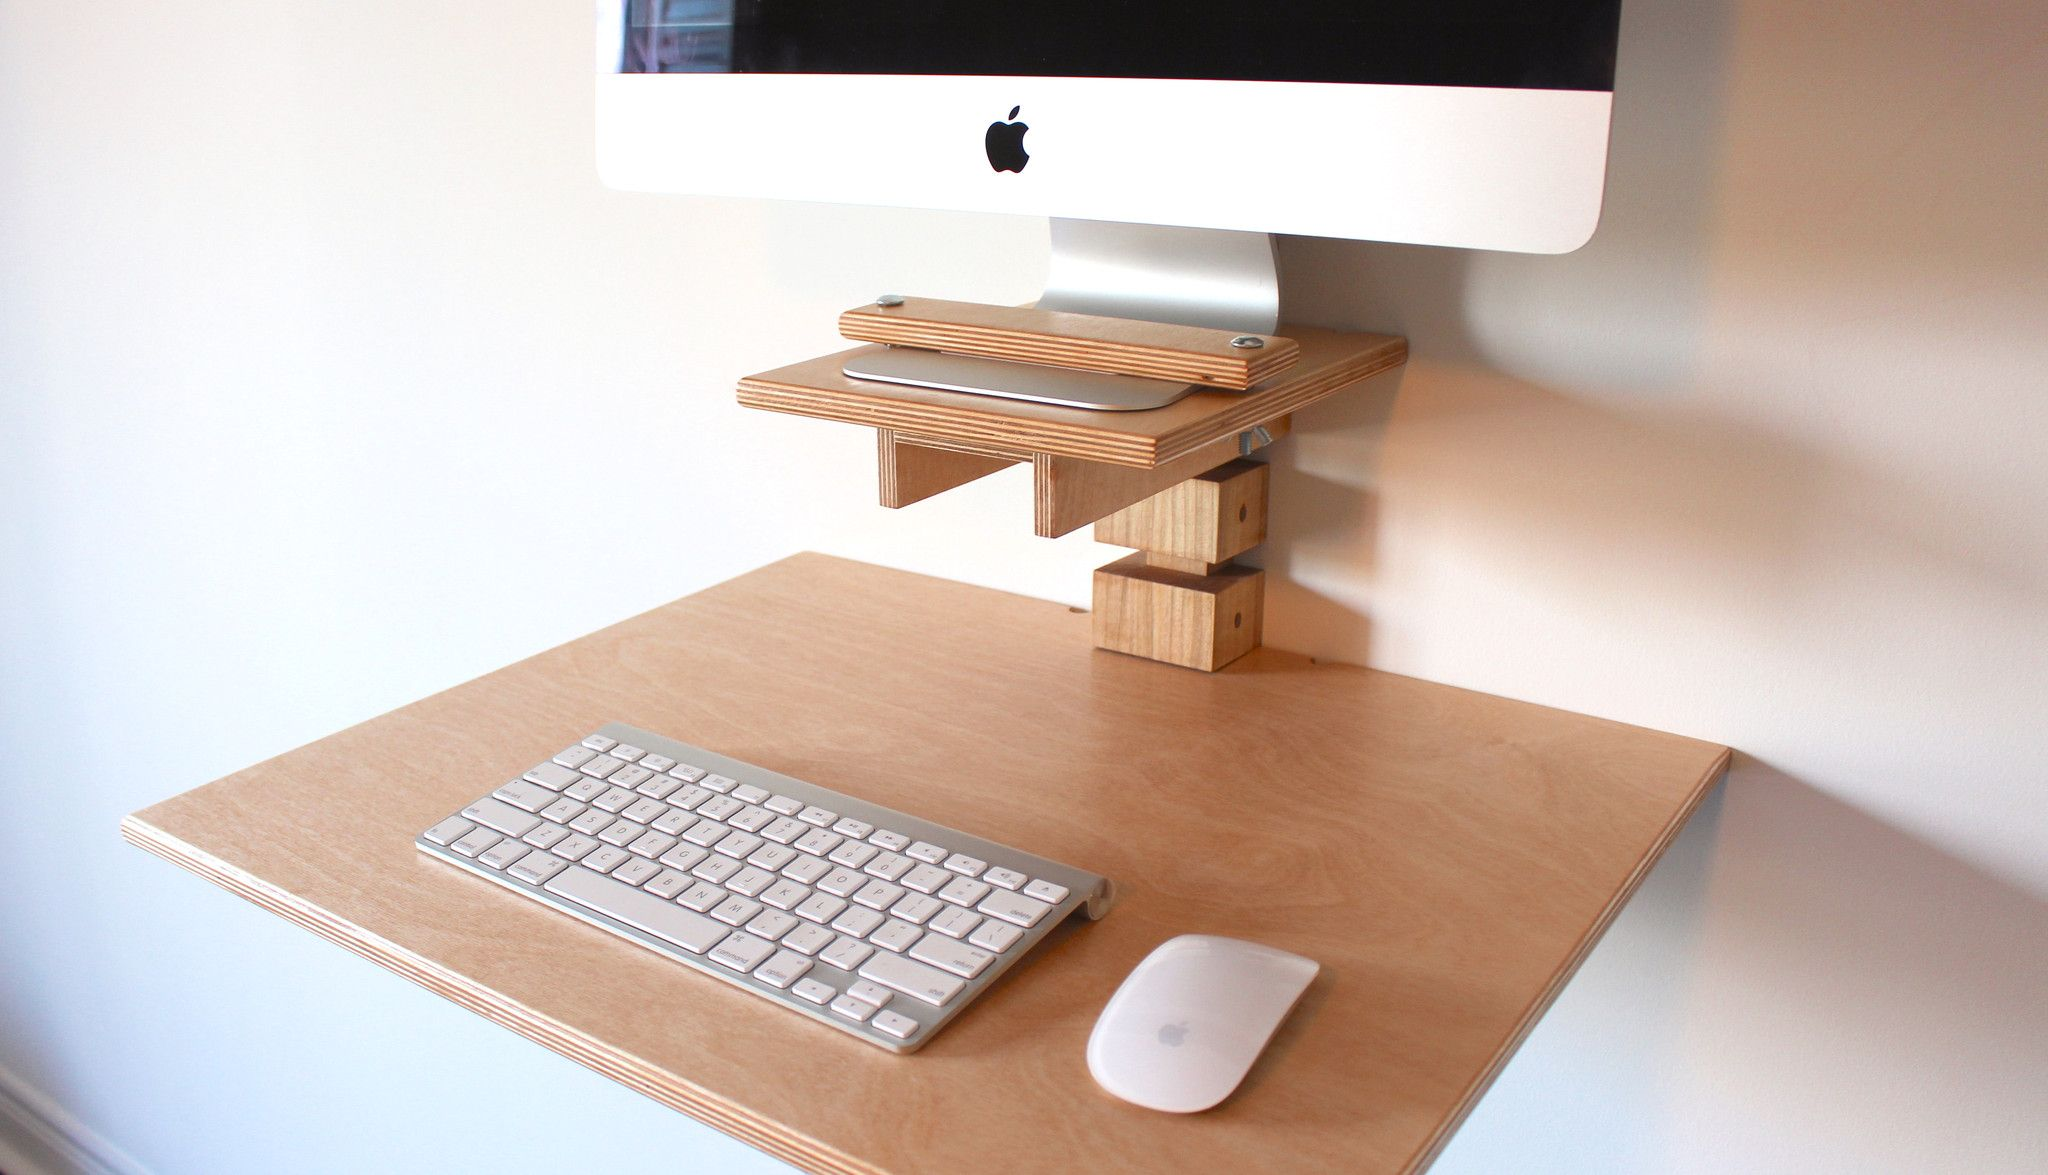 WallMounted Standing Desk iMac Model Wall mount Desks and